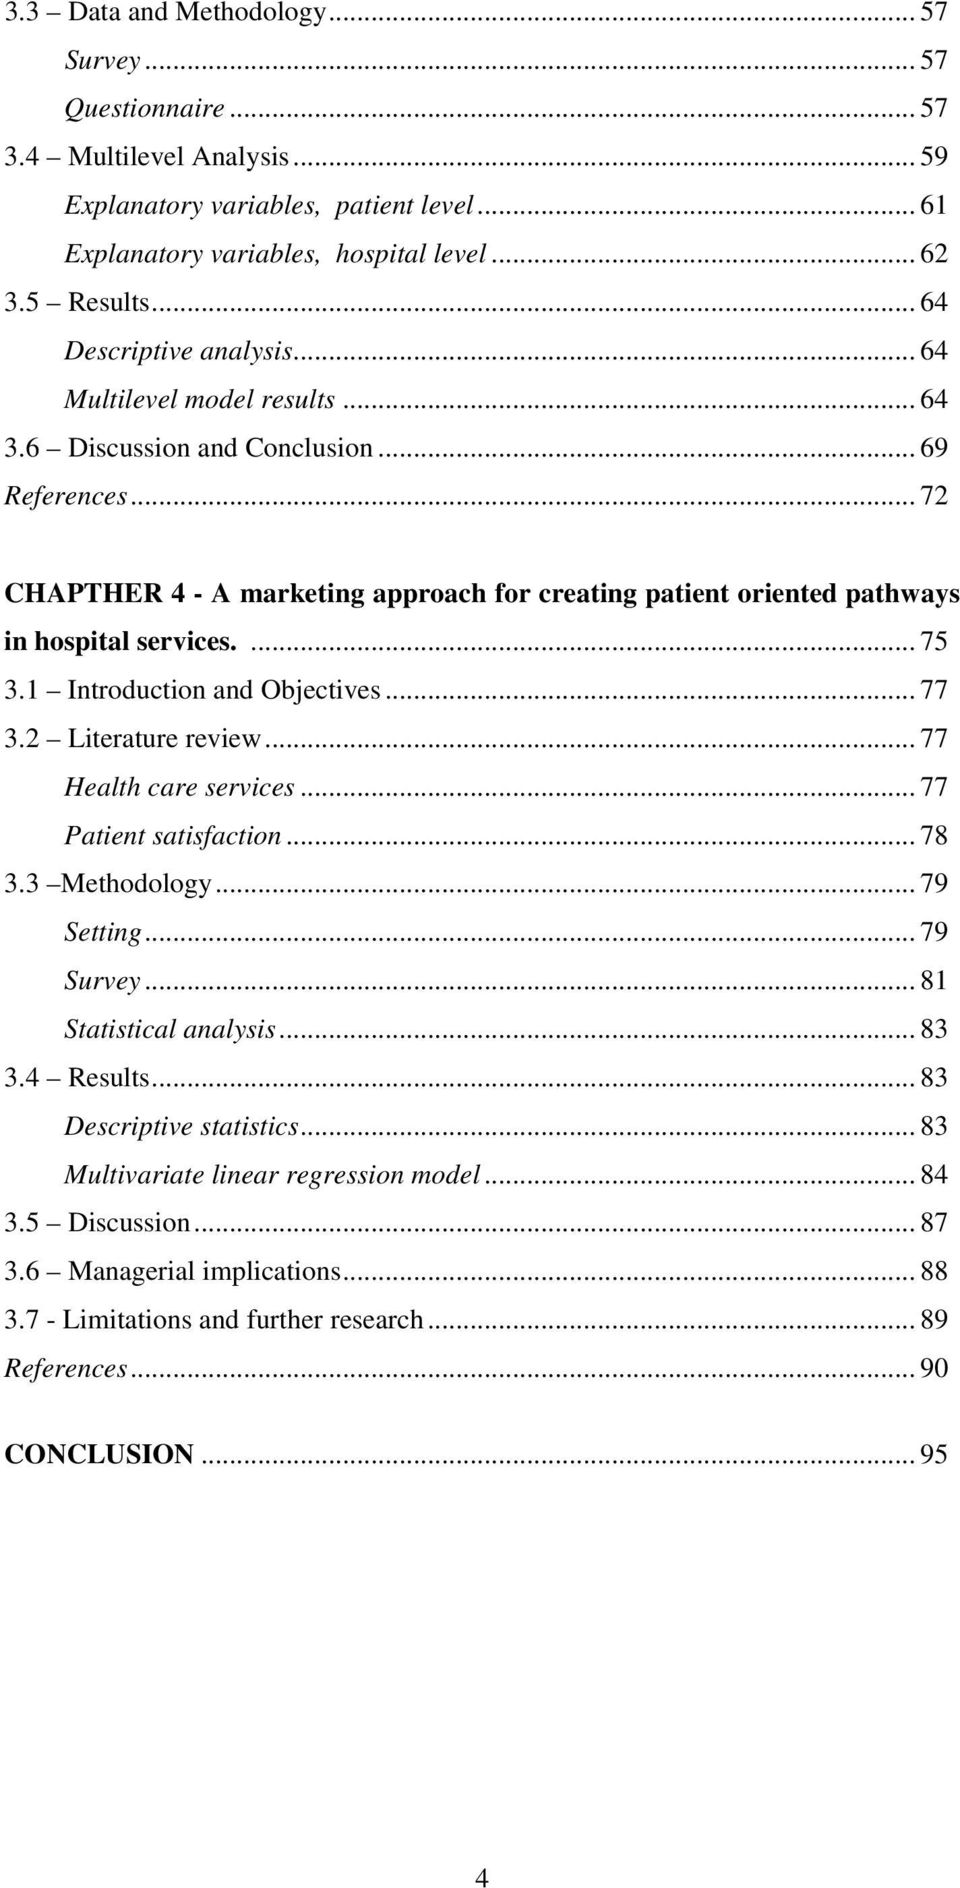 .. 72 CHAPTHER 4 - A marketing approach for creating patient oriented pathways in hospital services.... 75 3.1 Introduction and Objectives... 77 3.2 Literature review... 77 Health care services.